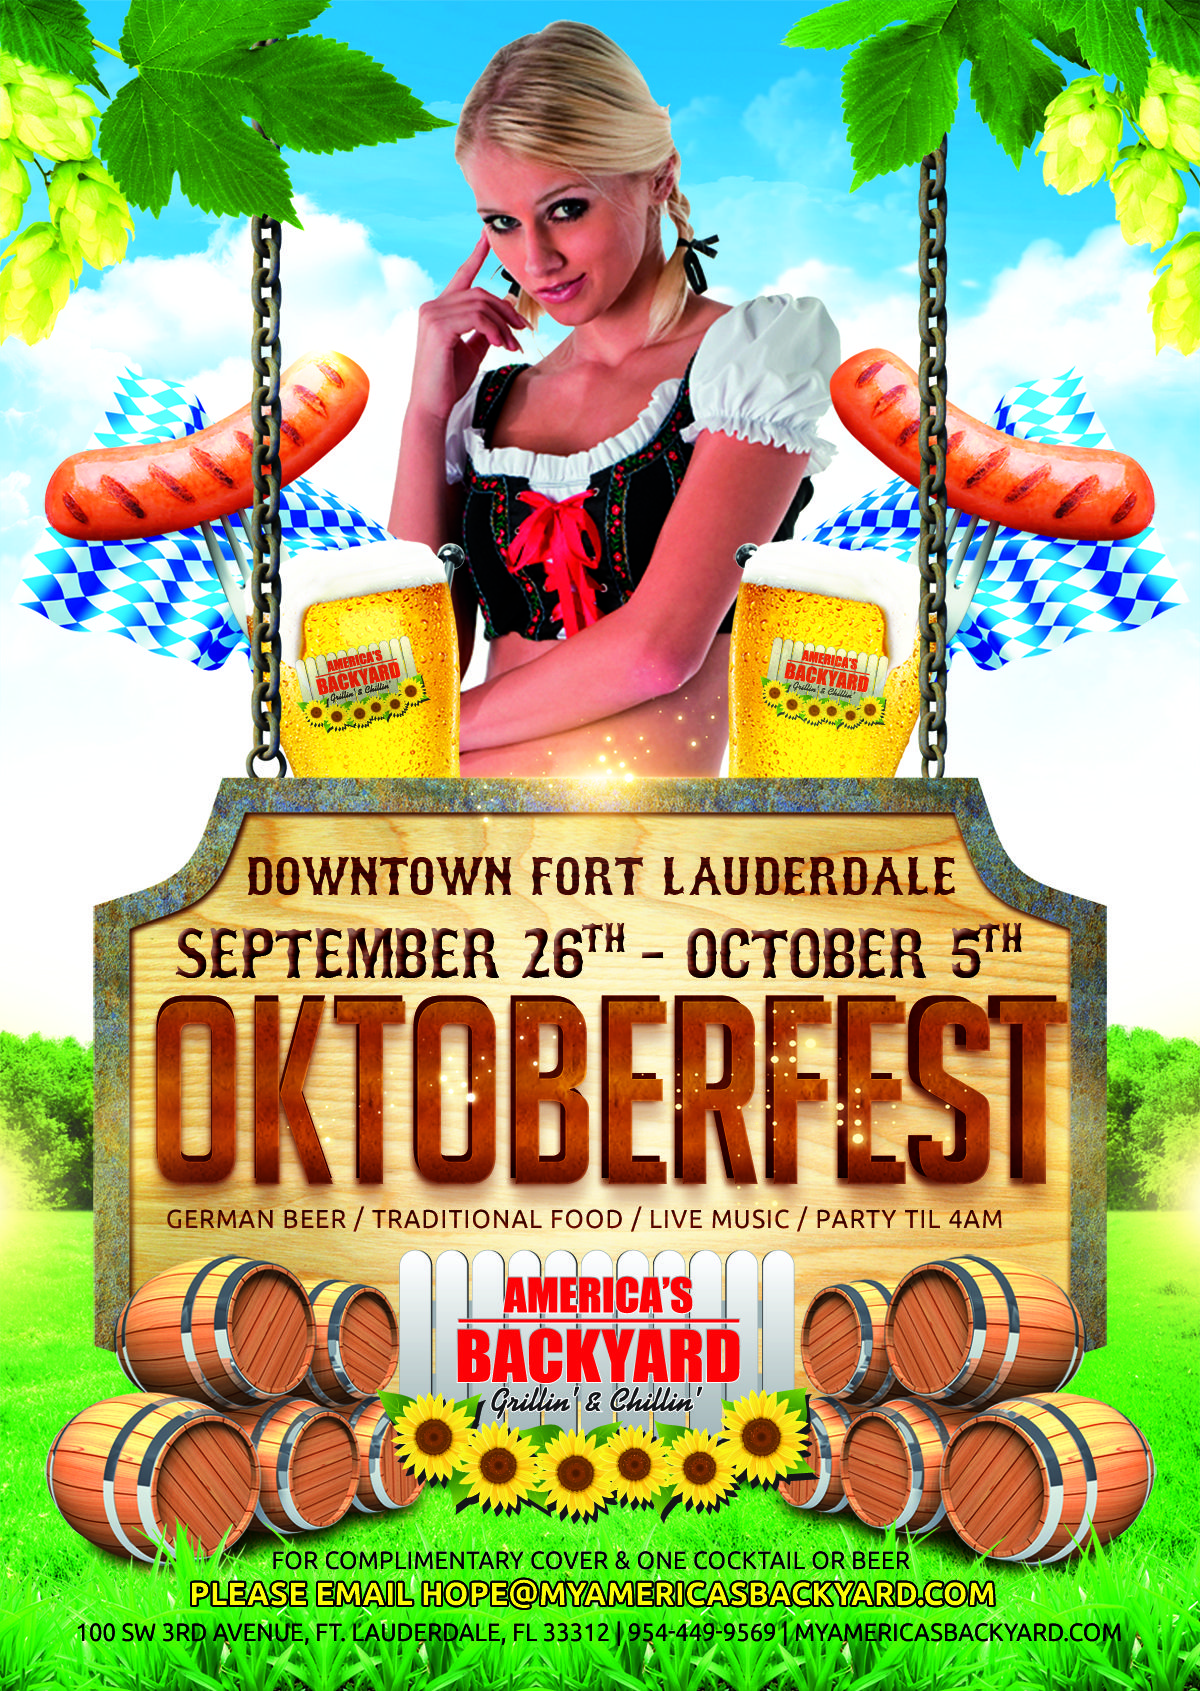 Oktoberfest At Americau0027s Backyard September 26th   October 5th! Come Enjoy  Traditional German Beerand Food, Games, And A Live Band!